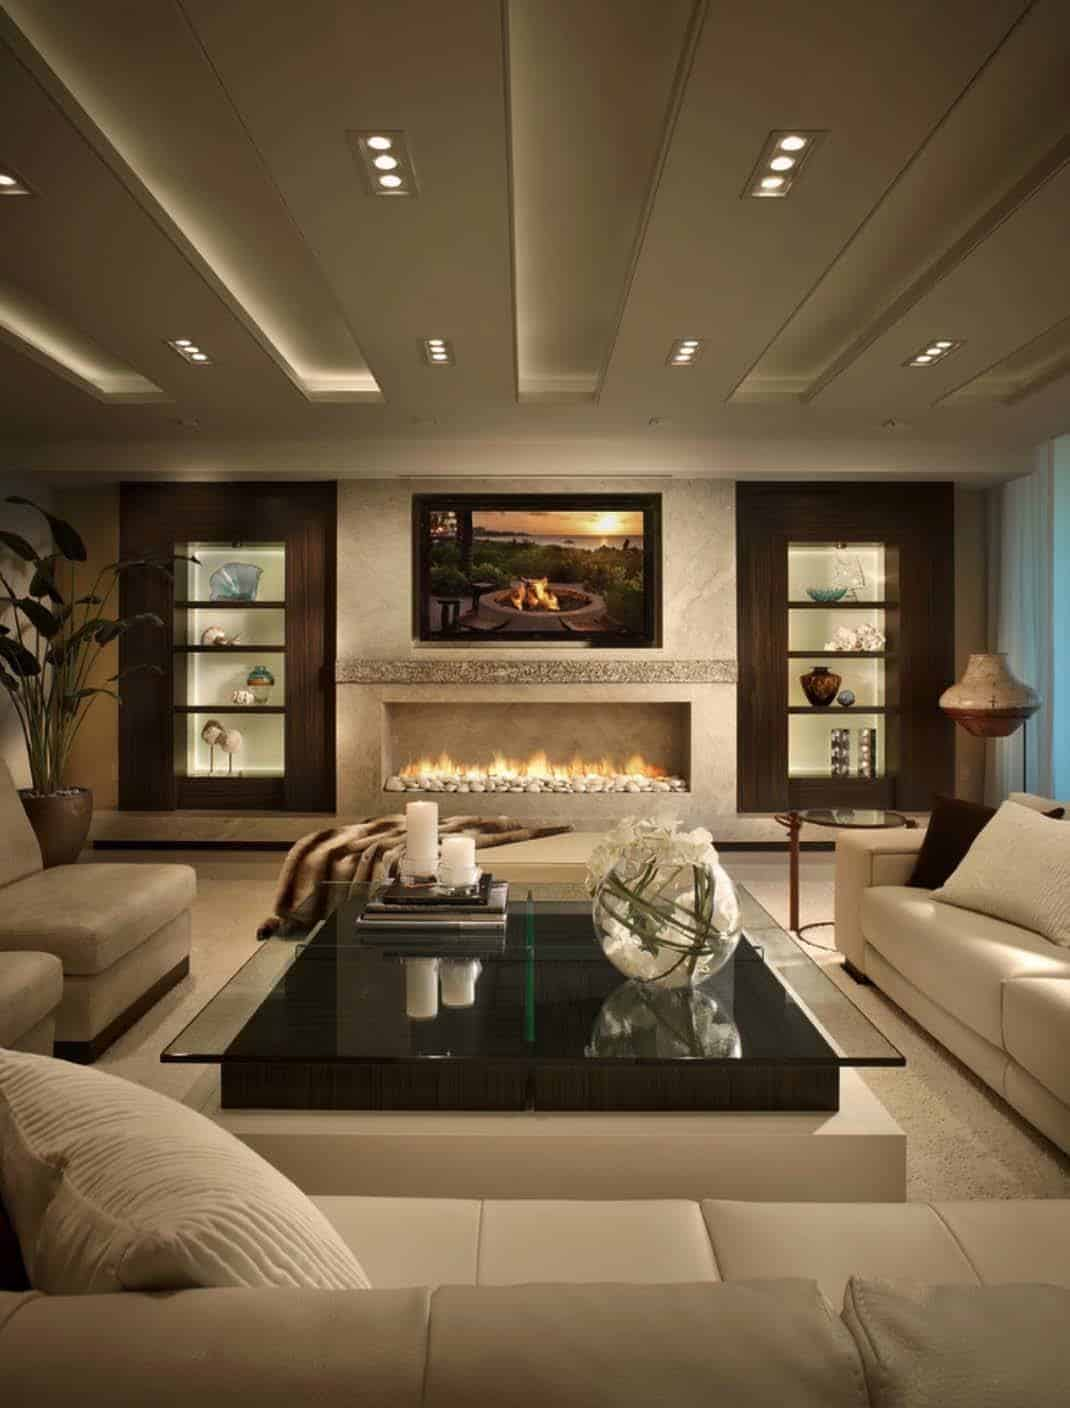 contemporary-residence-interiors-by-steven-g-05-1-kindesign